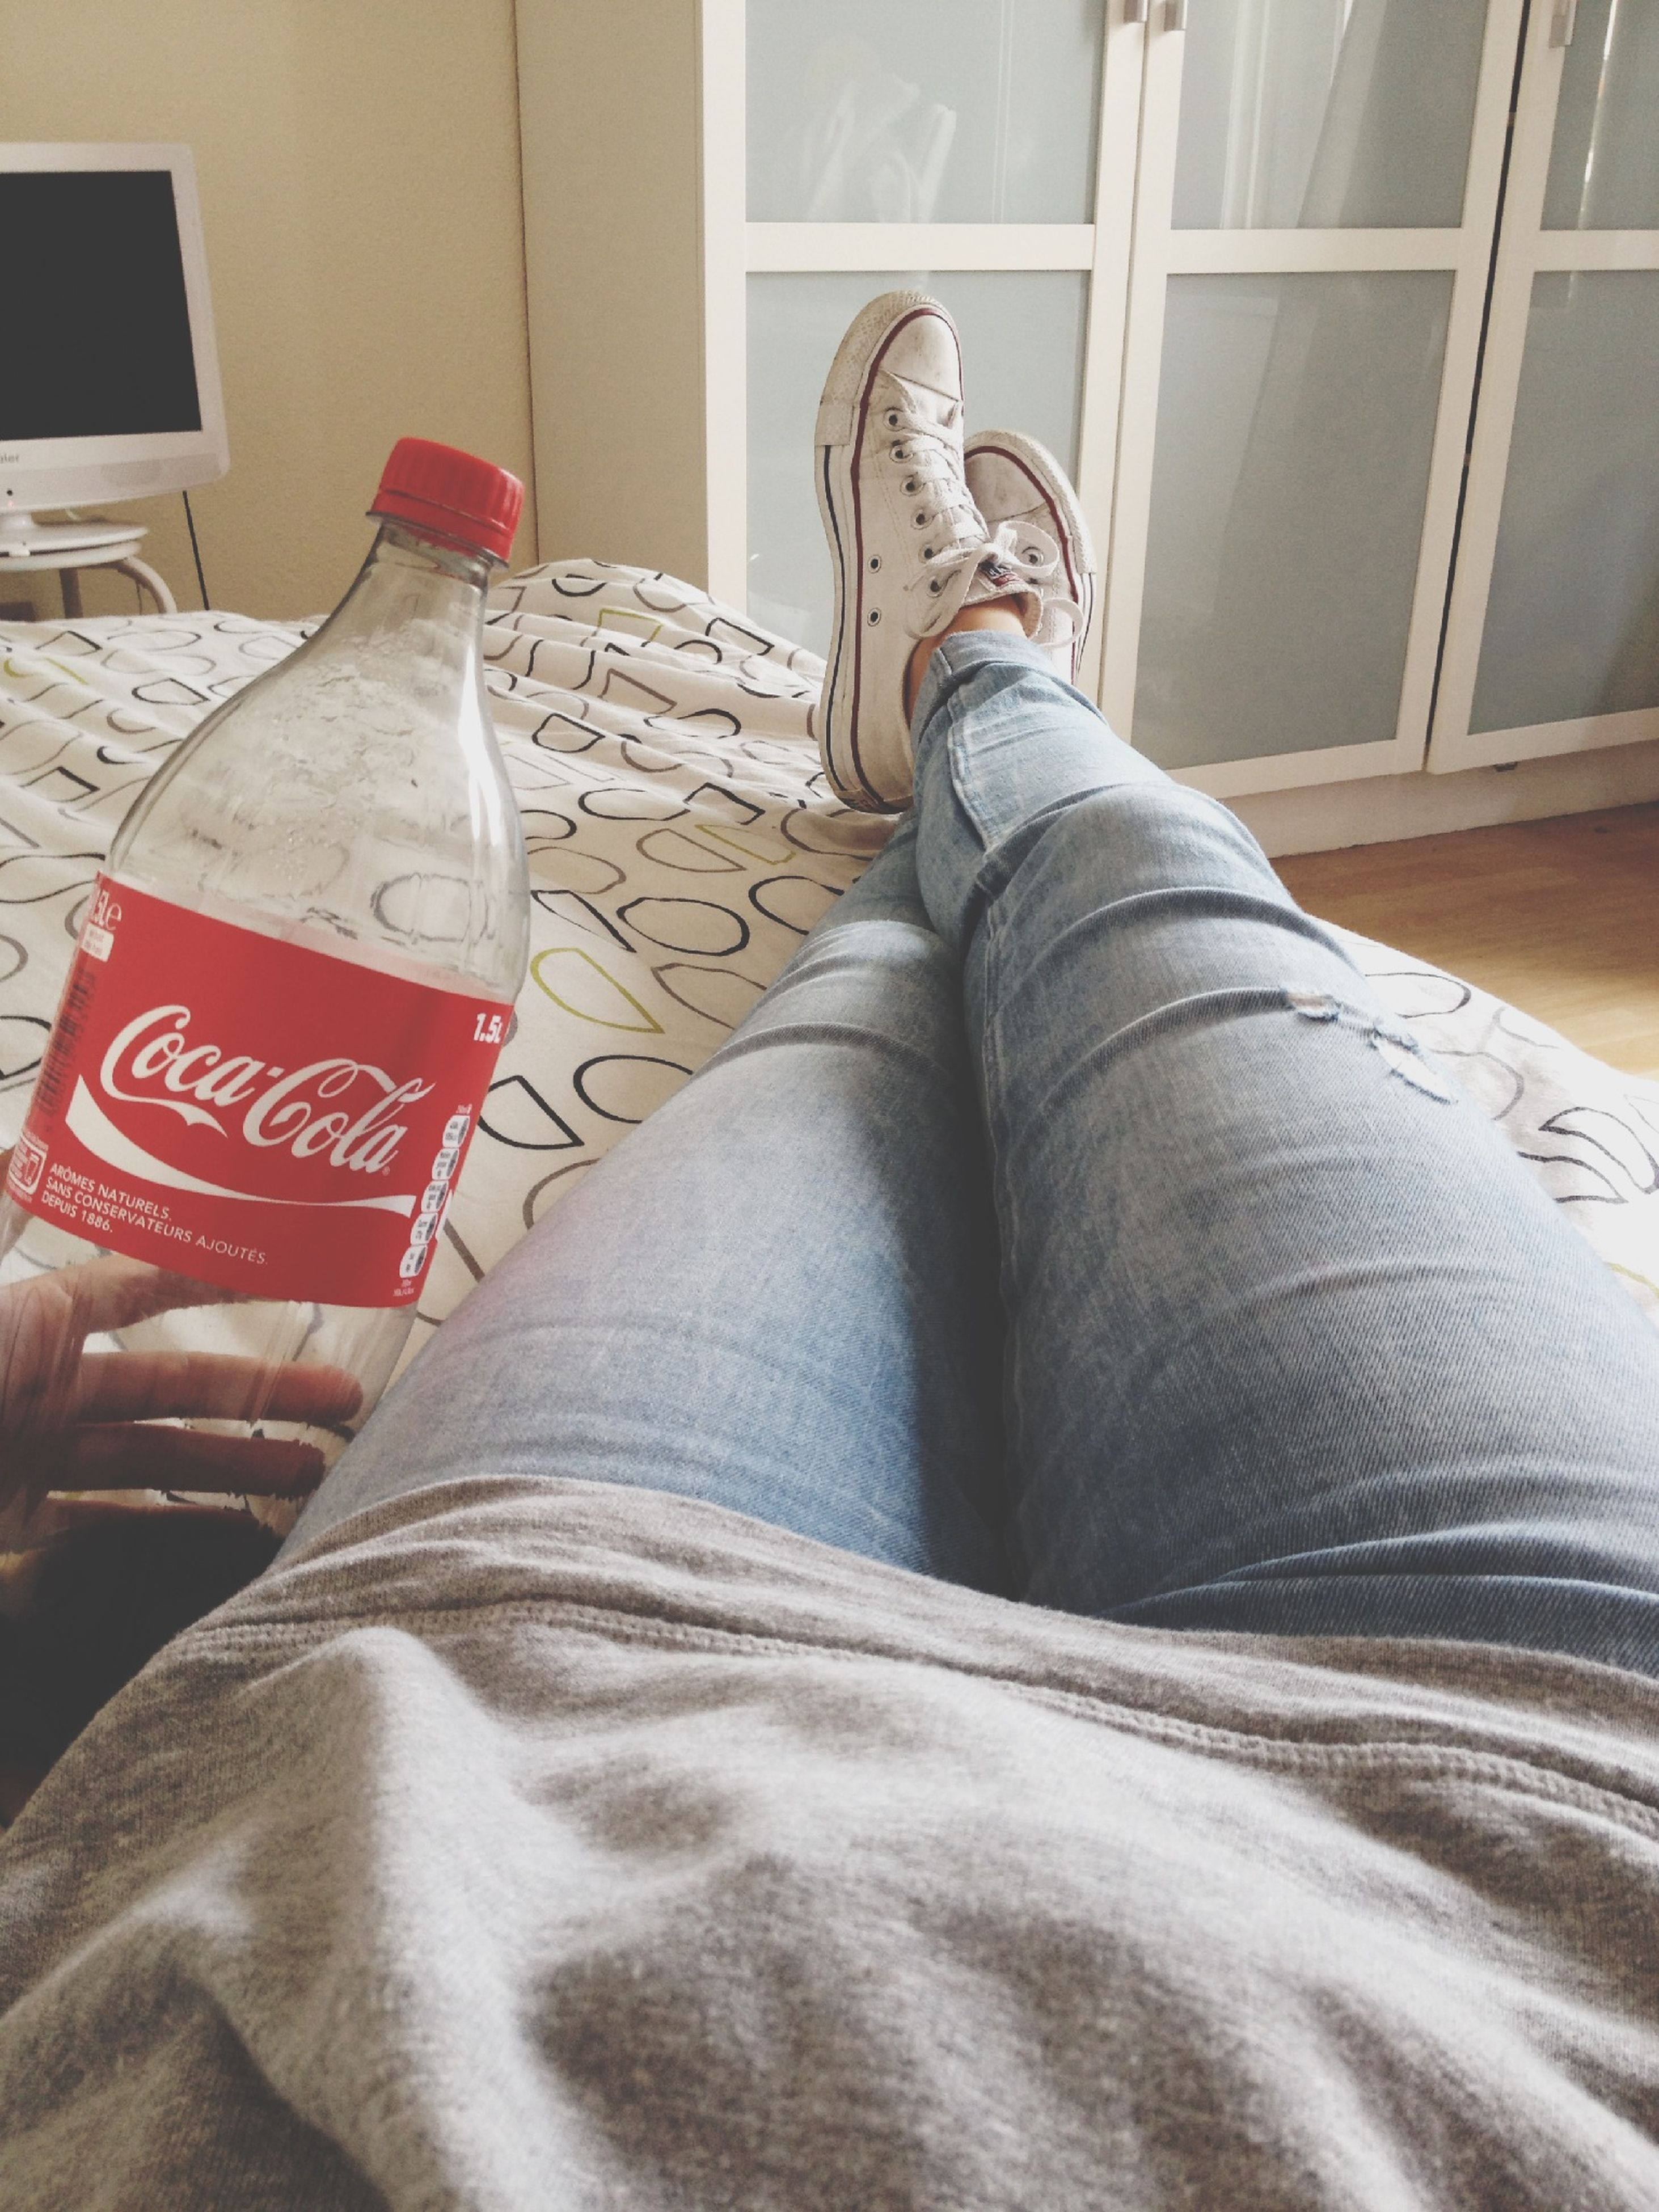 person, low section, indoors, relaxation, personal perspective, shoe, lifestyles, jeans, bed, human foot, legs crossed at ankle, resting, sitting, home interior, casual clothing, lying down, leisure activity